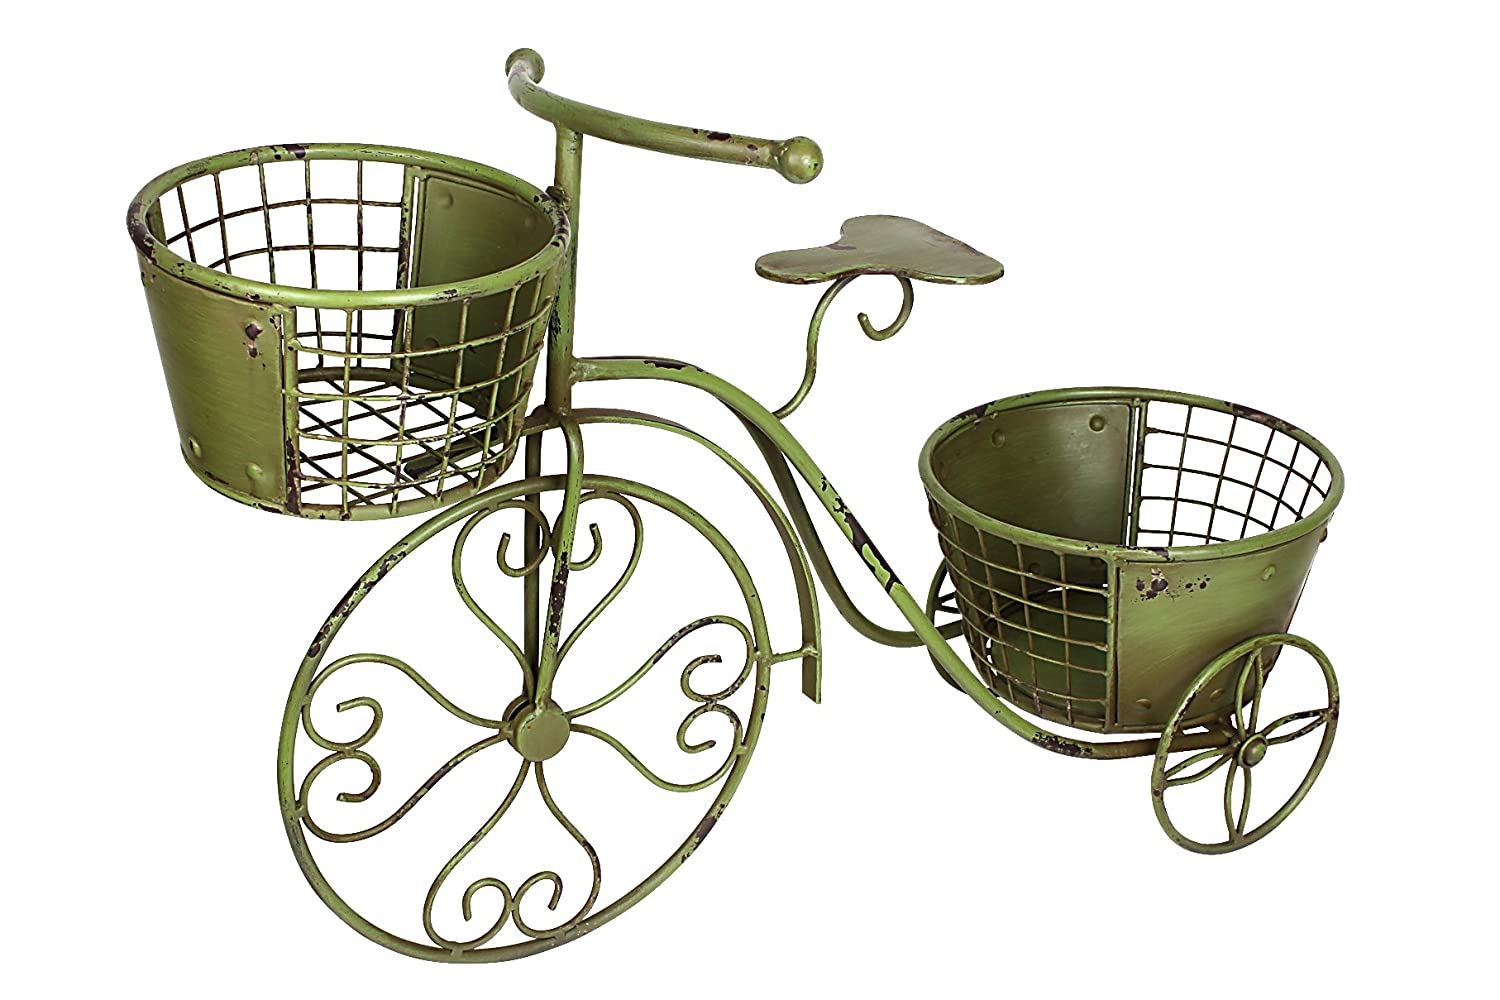 Metal Nostalgia Yard Bike Planter